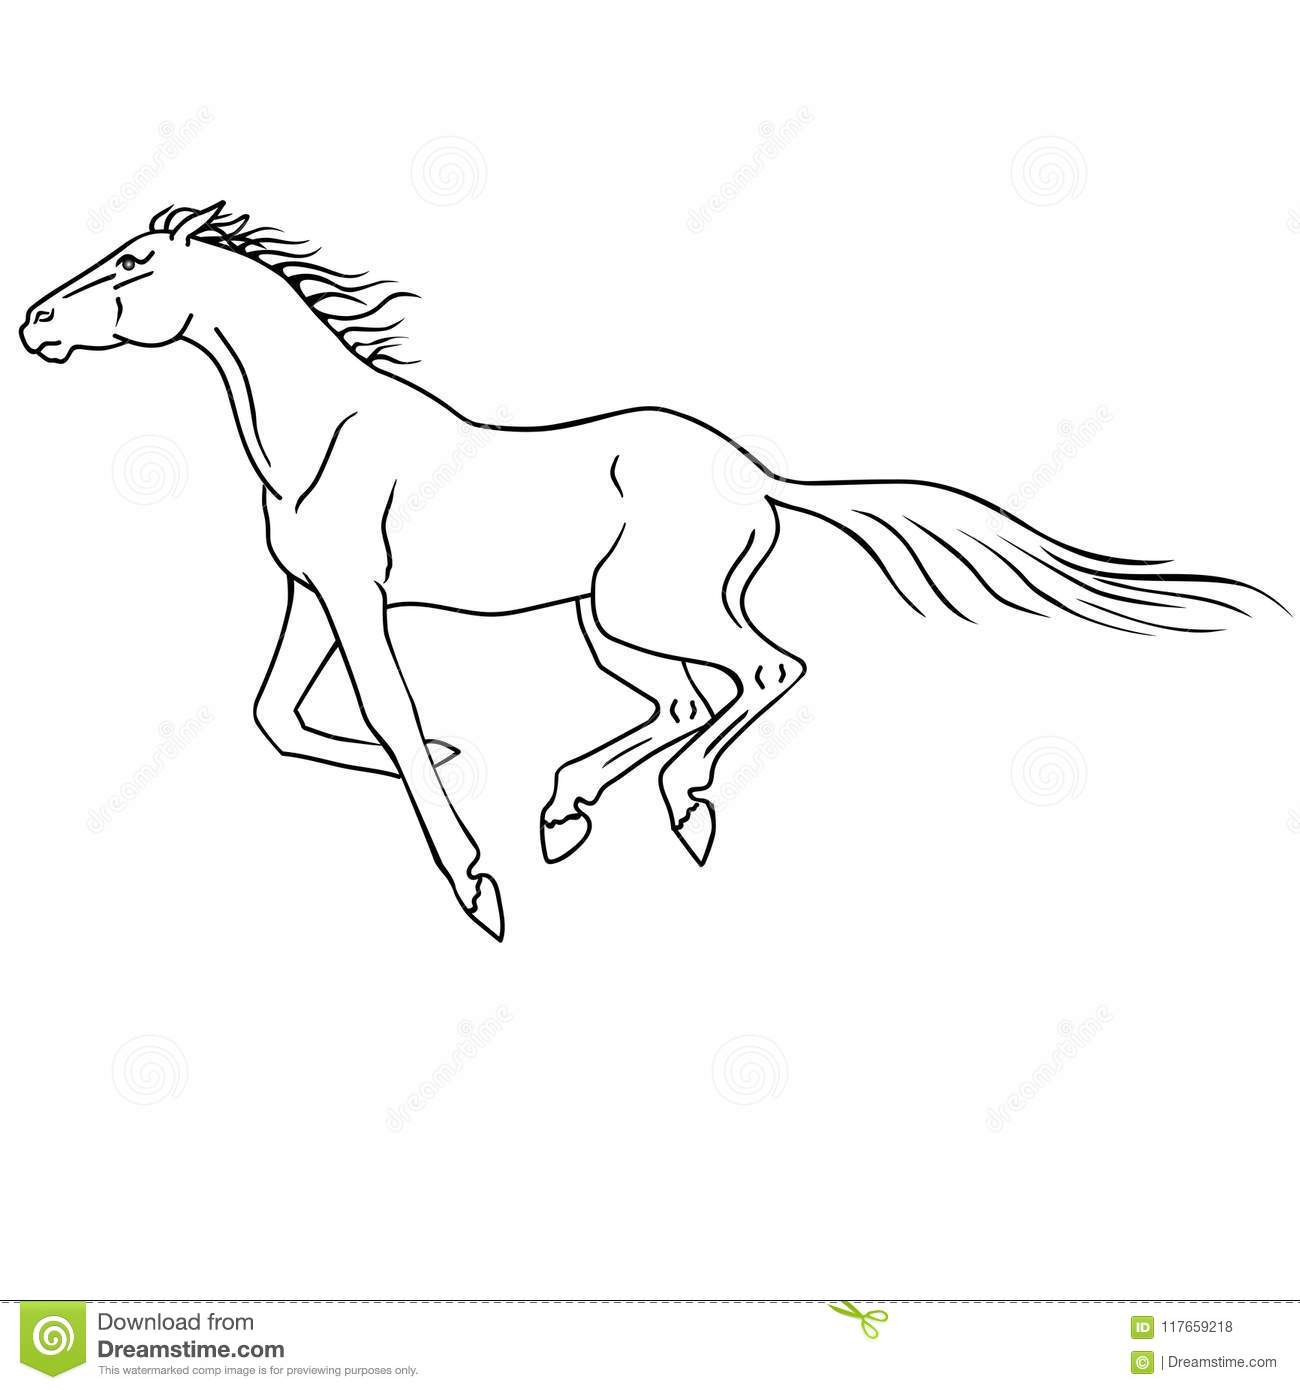 The Horse Galloping Galloping Line Drawing For Coloring